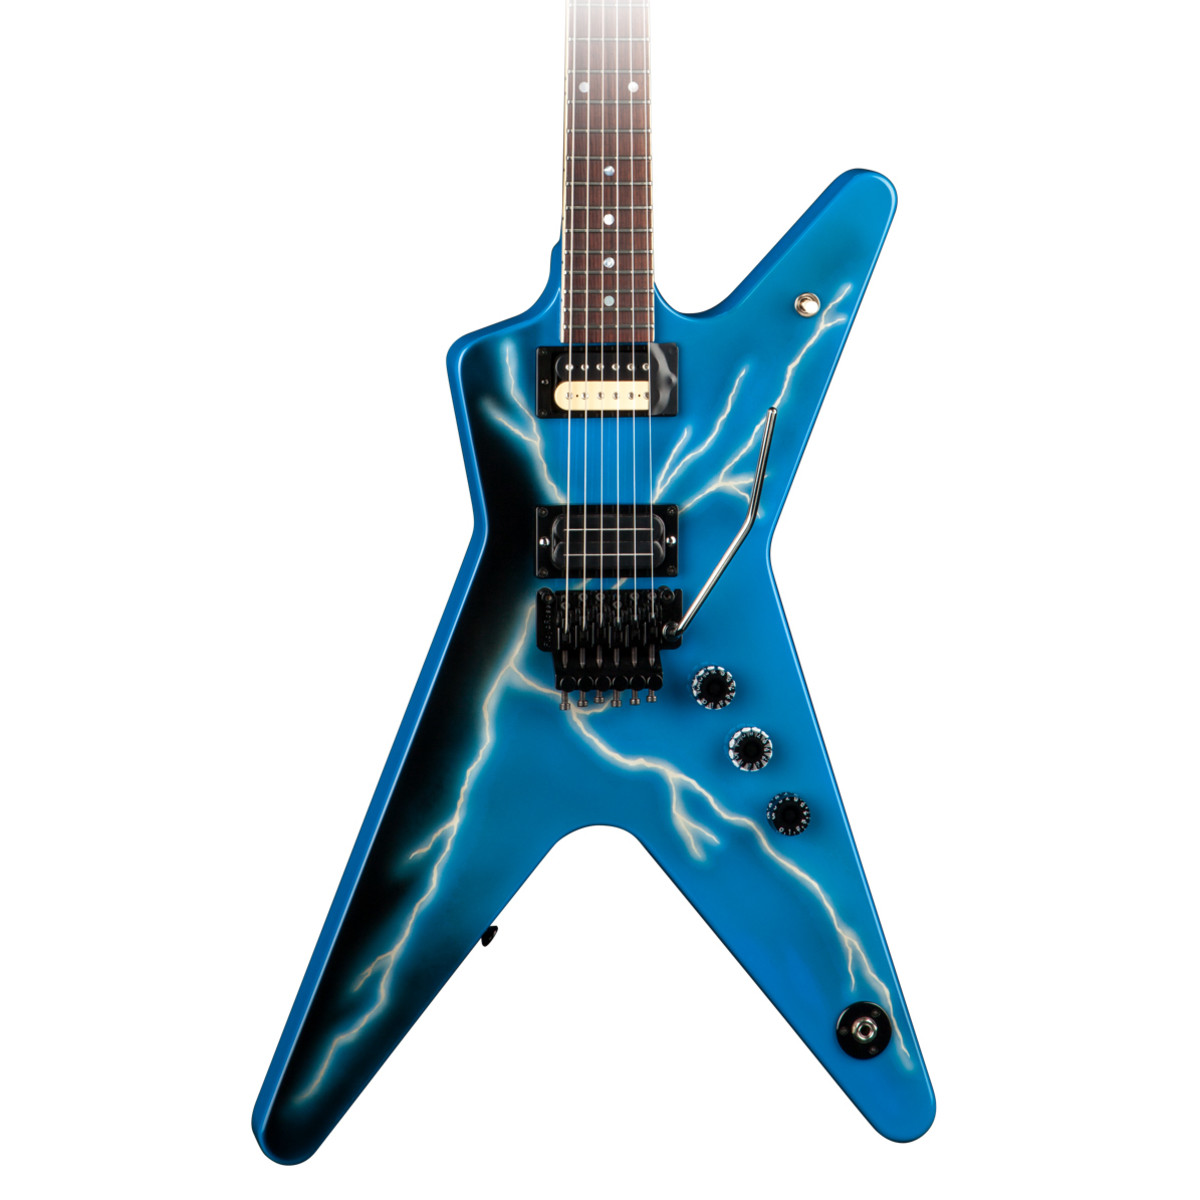 dean usa dimebag commemorative ml limited run lighting blue at gear4music. Black Bedroom Furniture Sets. Home Design Ideas